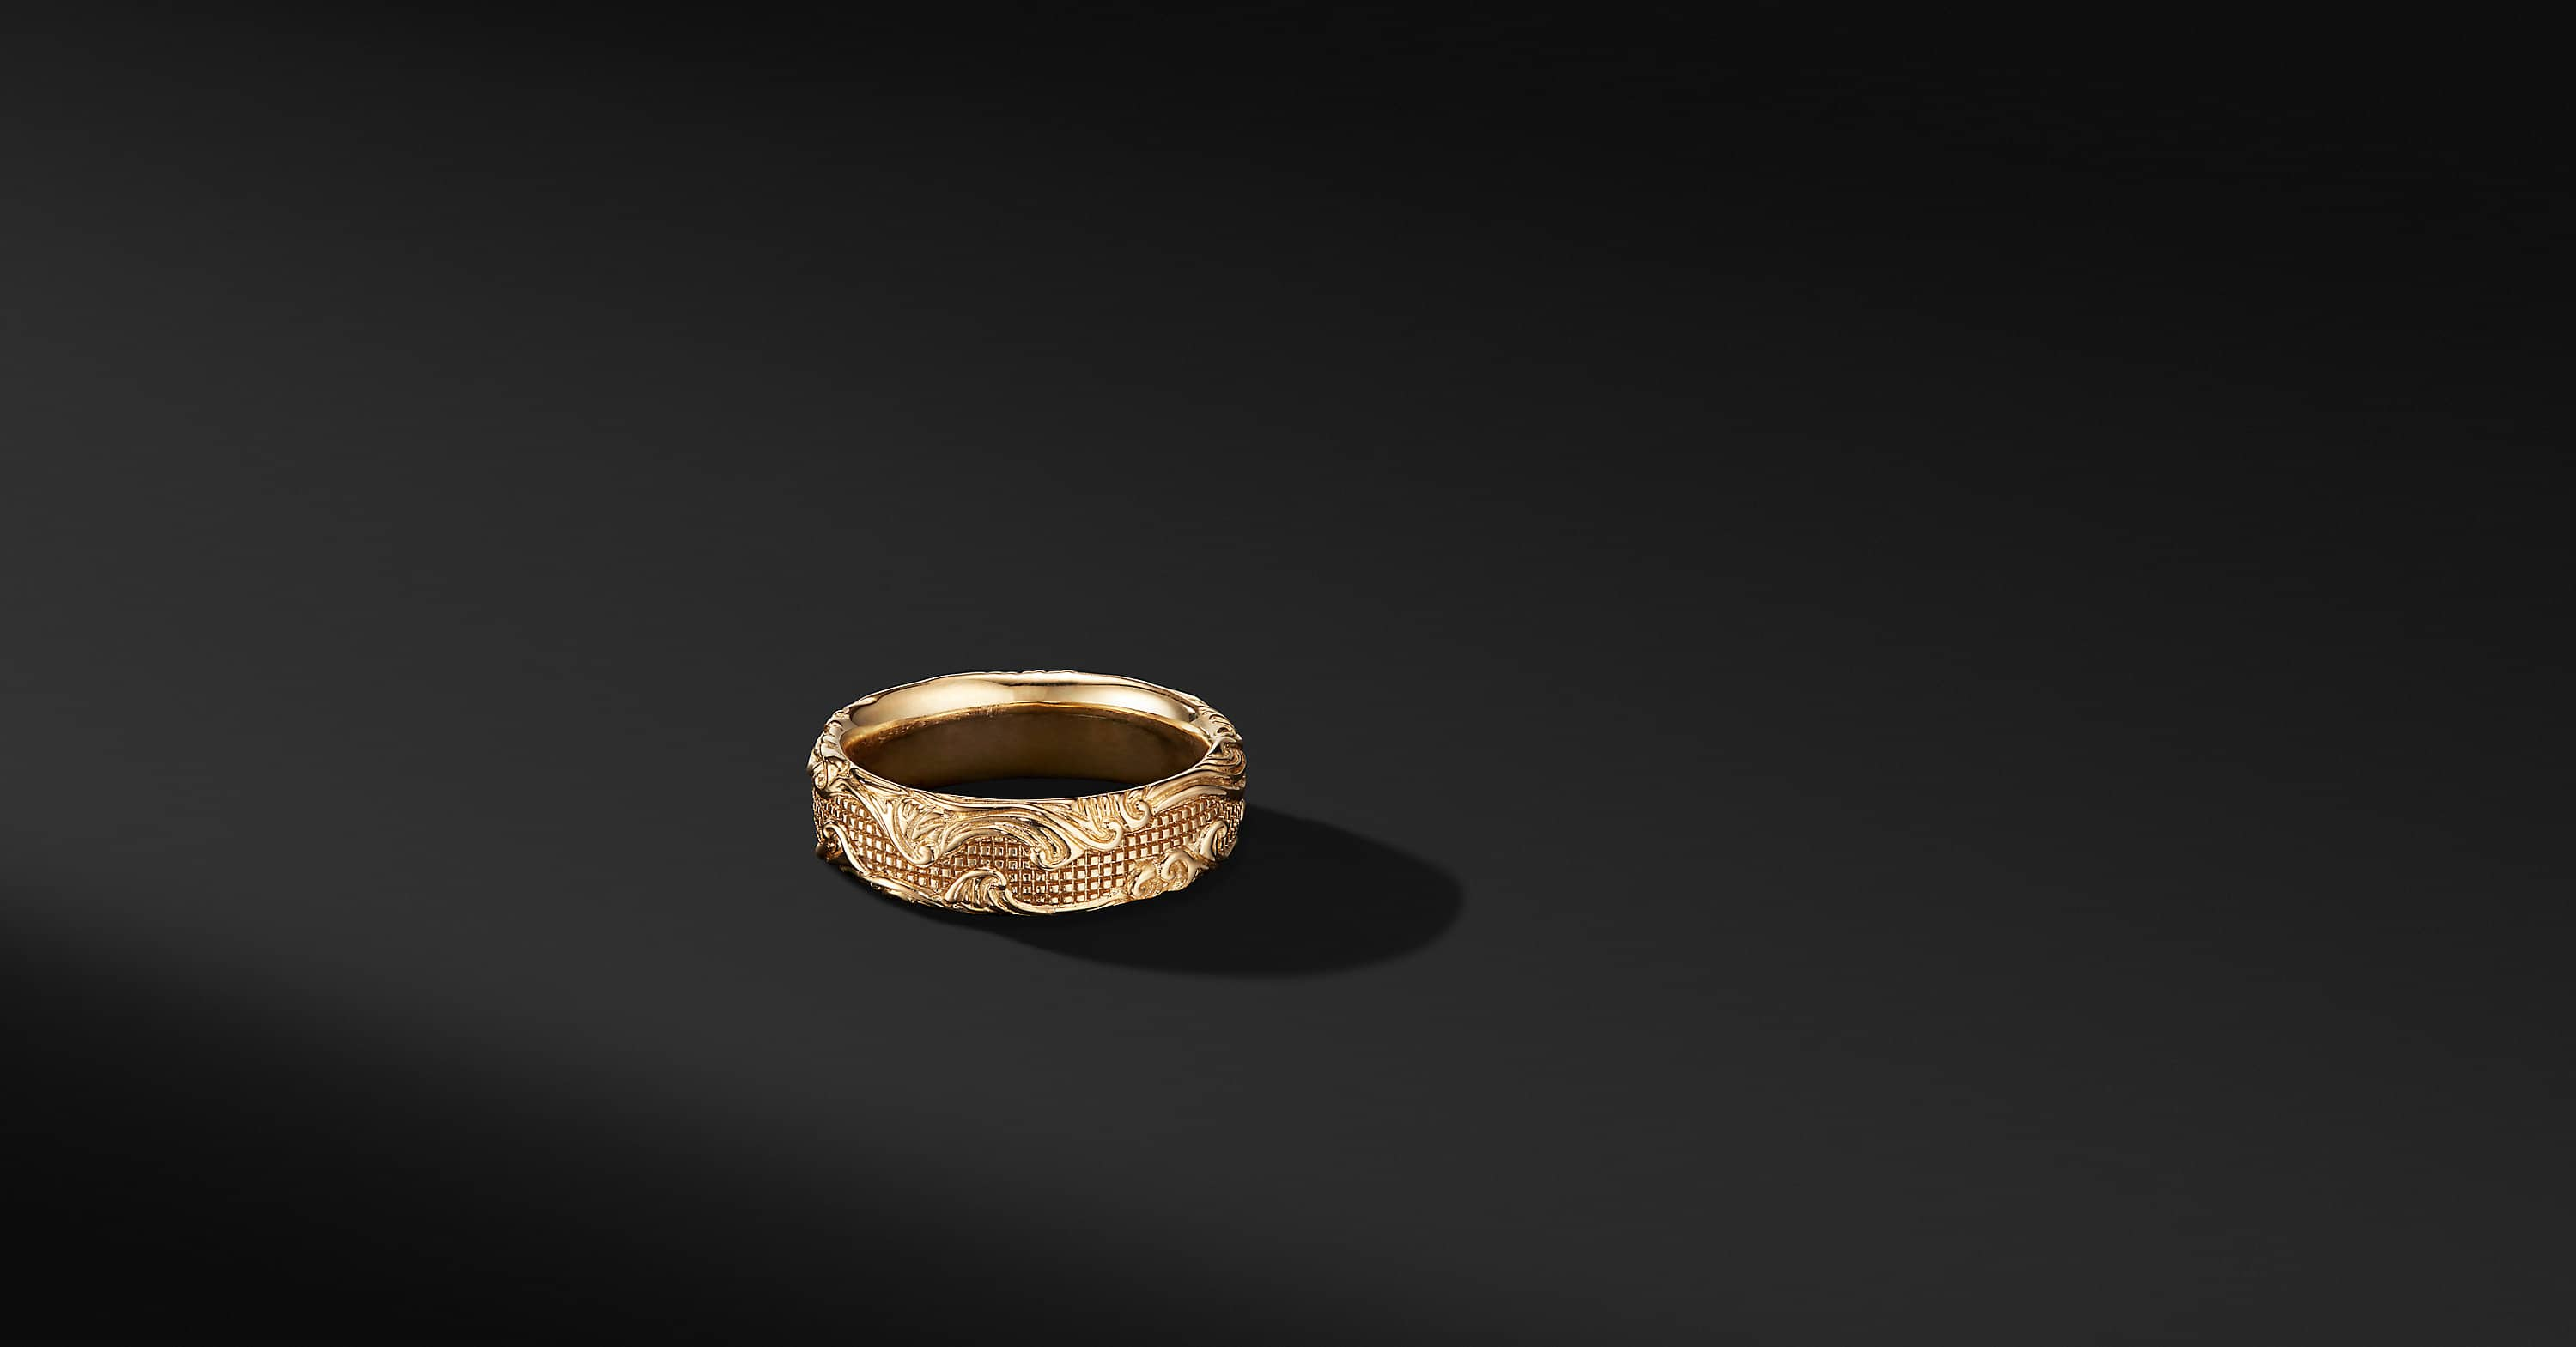 Waves Band Ring in 18K Yellow Gold, 7mm